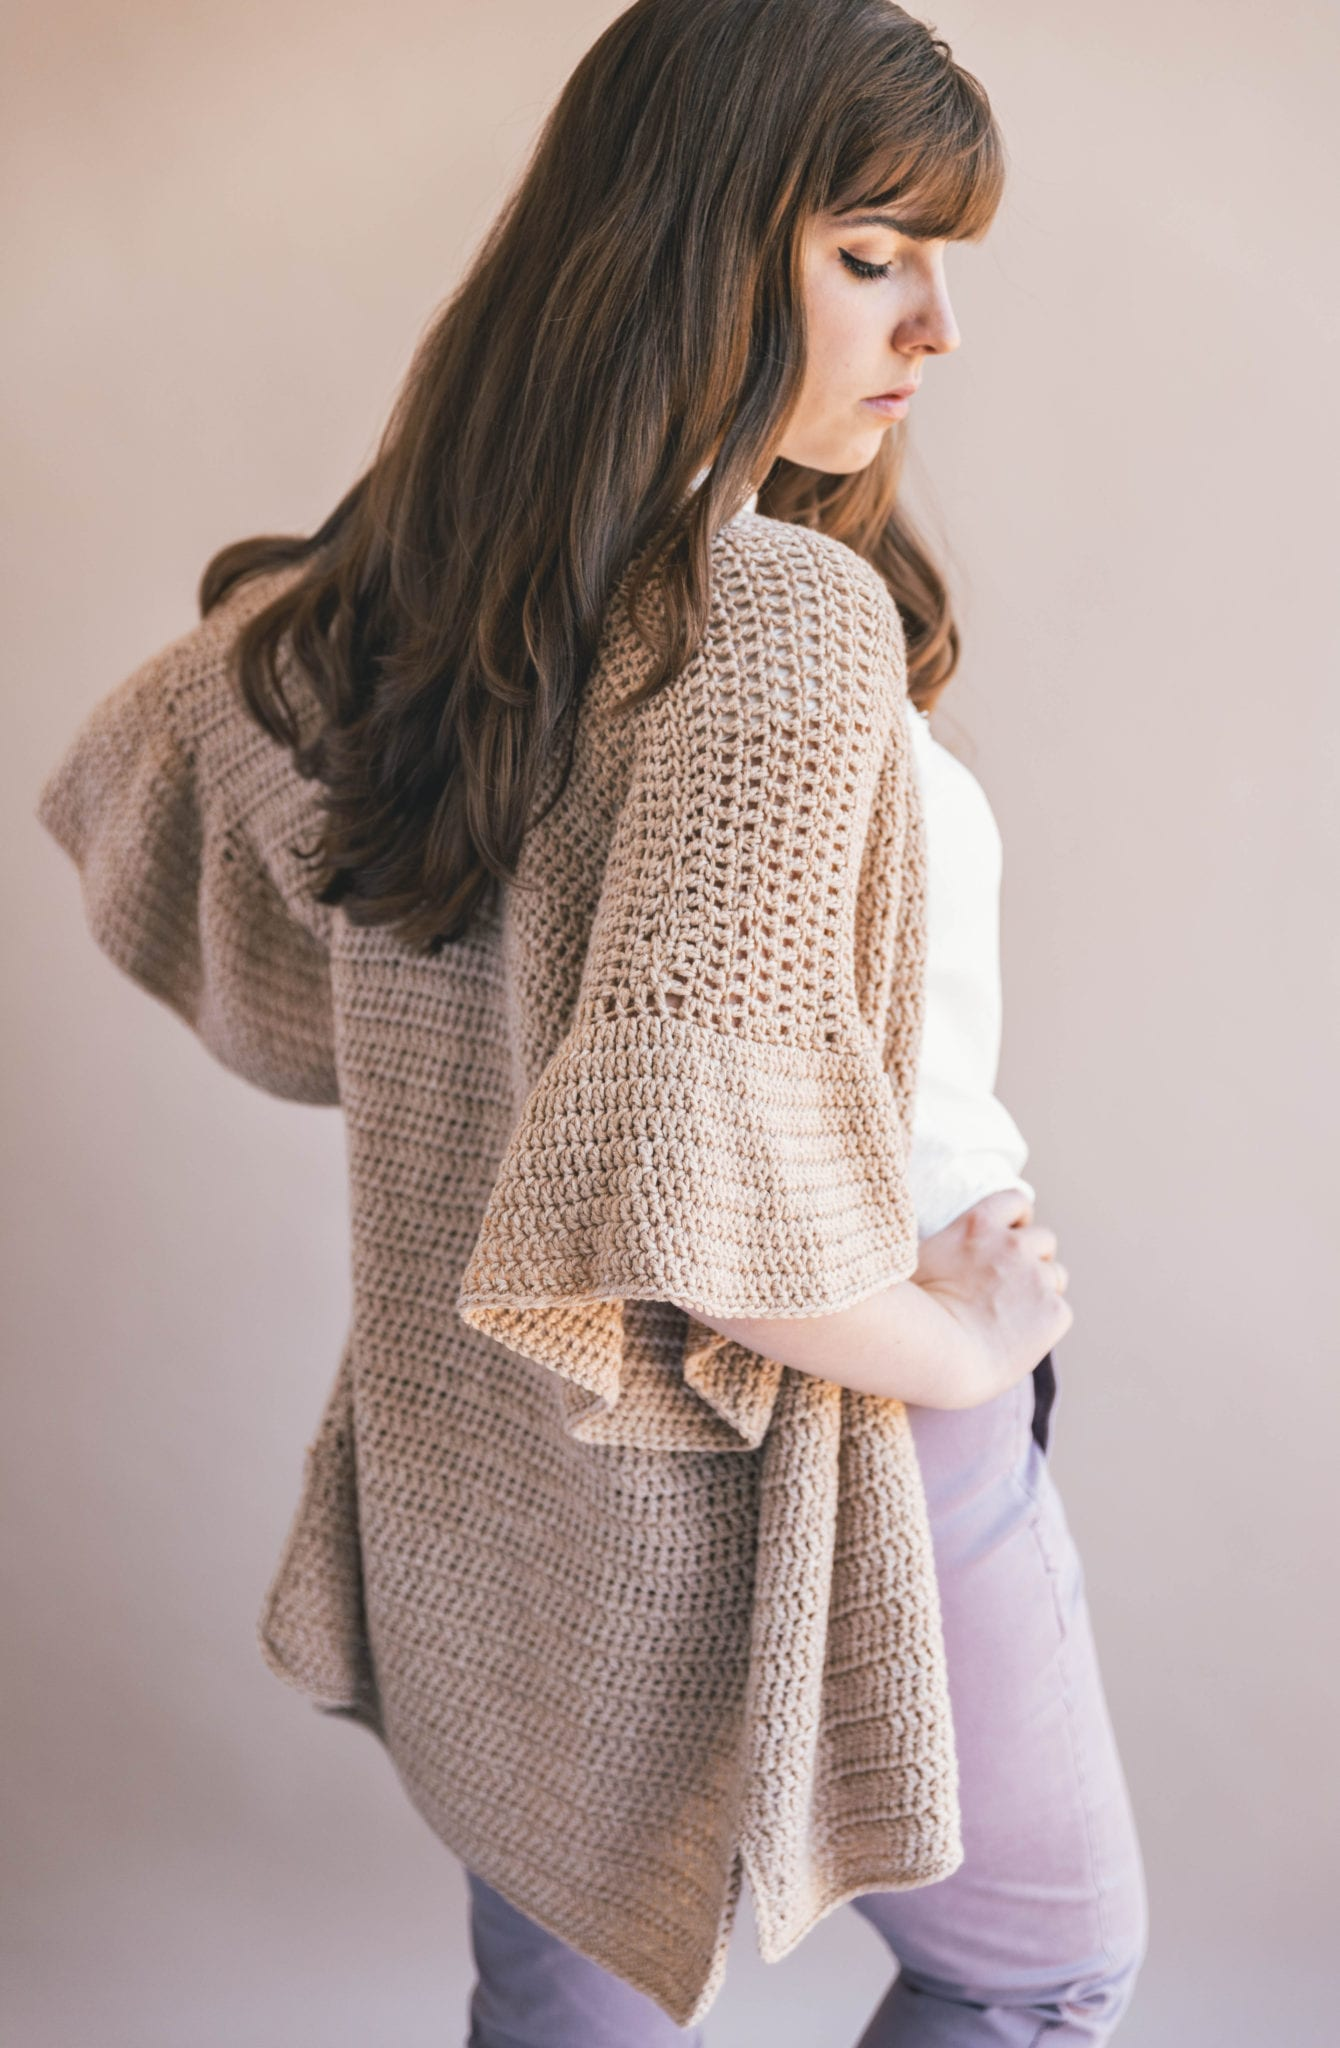 31245c23f90a1a I m getting ready for the warmer months with this Crochet Ruffle Sleeve  Cardigan that s as easy to make as it is stunning to wear.